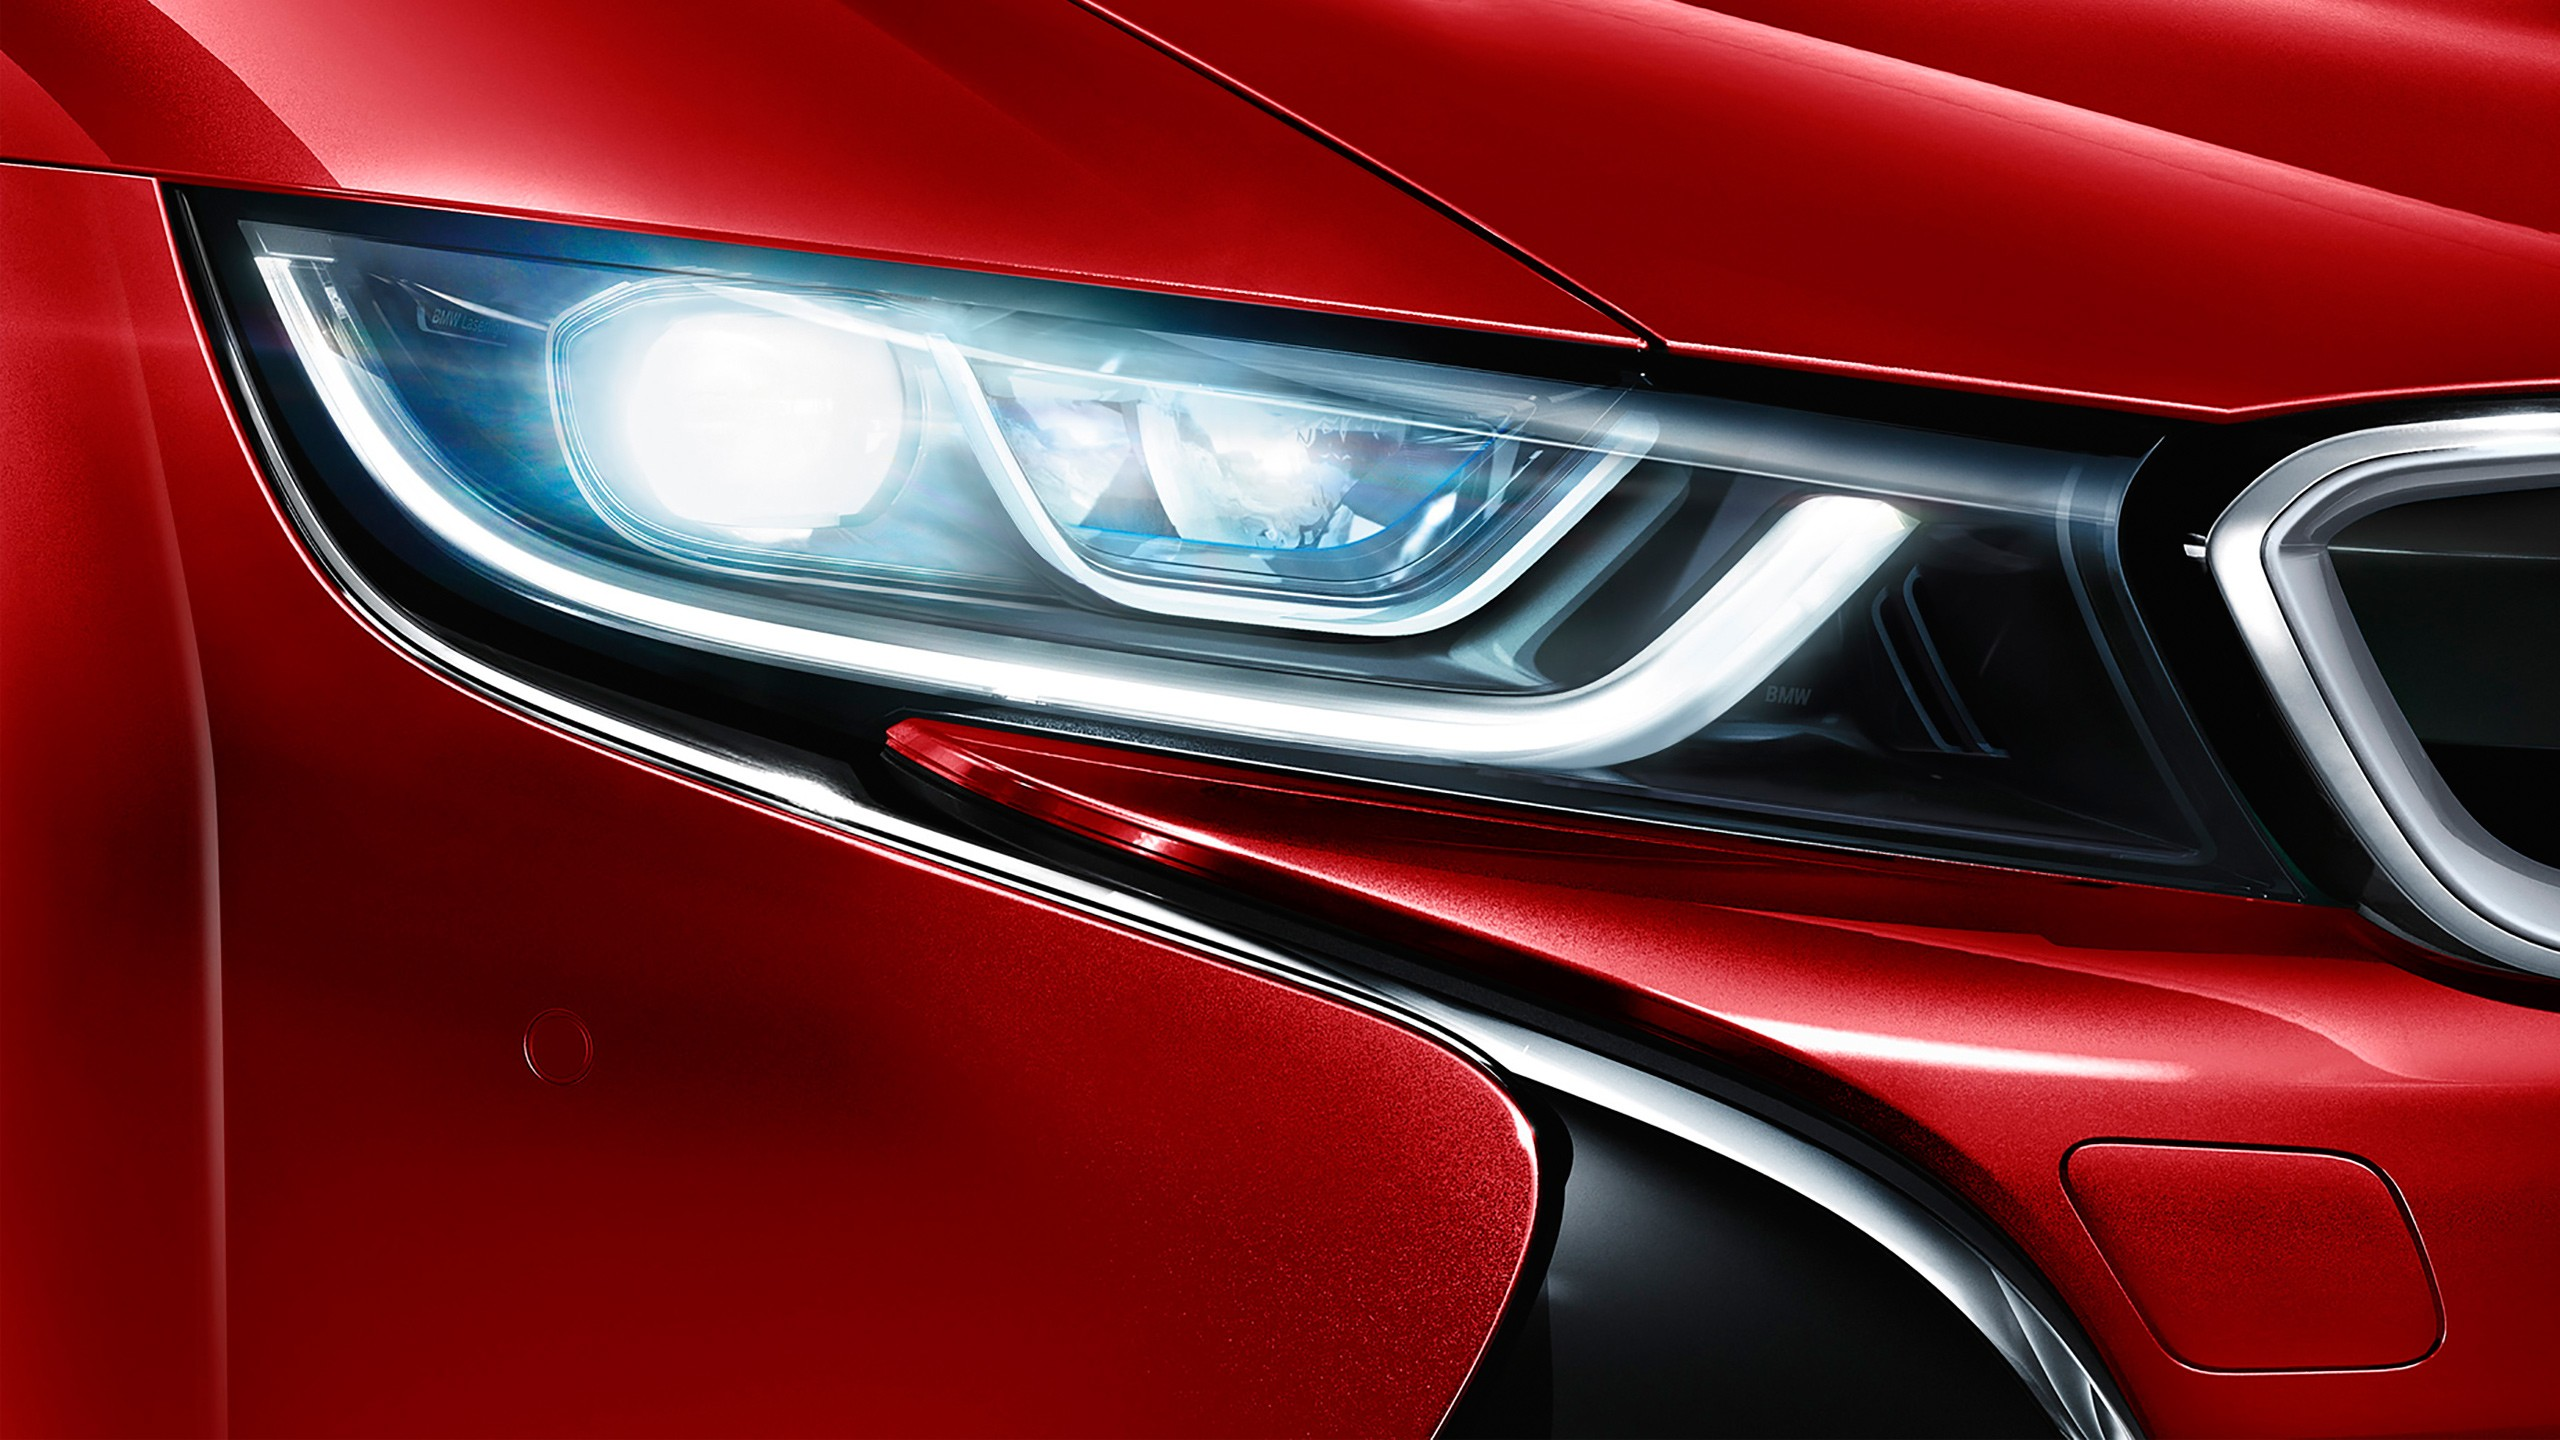 Bmw I8 Celebration Edition Protonic Red Wallpaper Hd Car Wallpapers Id 6629